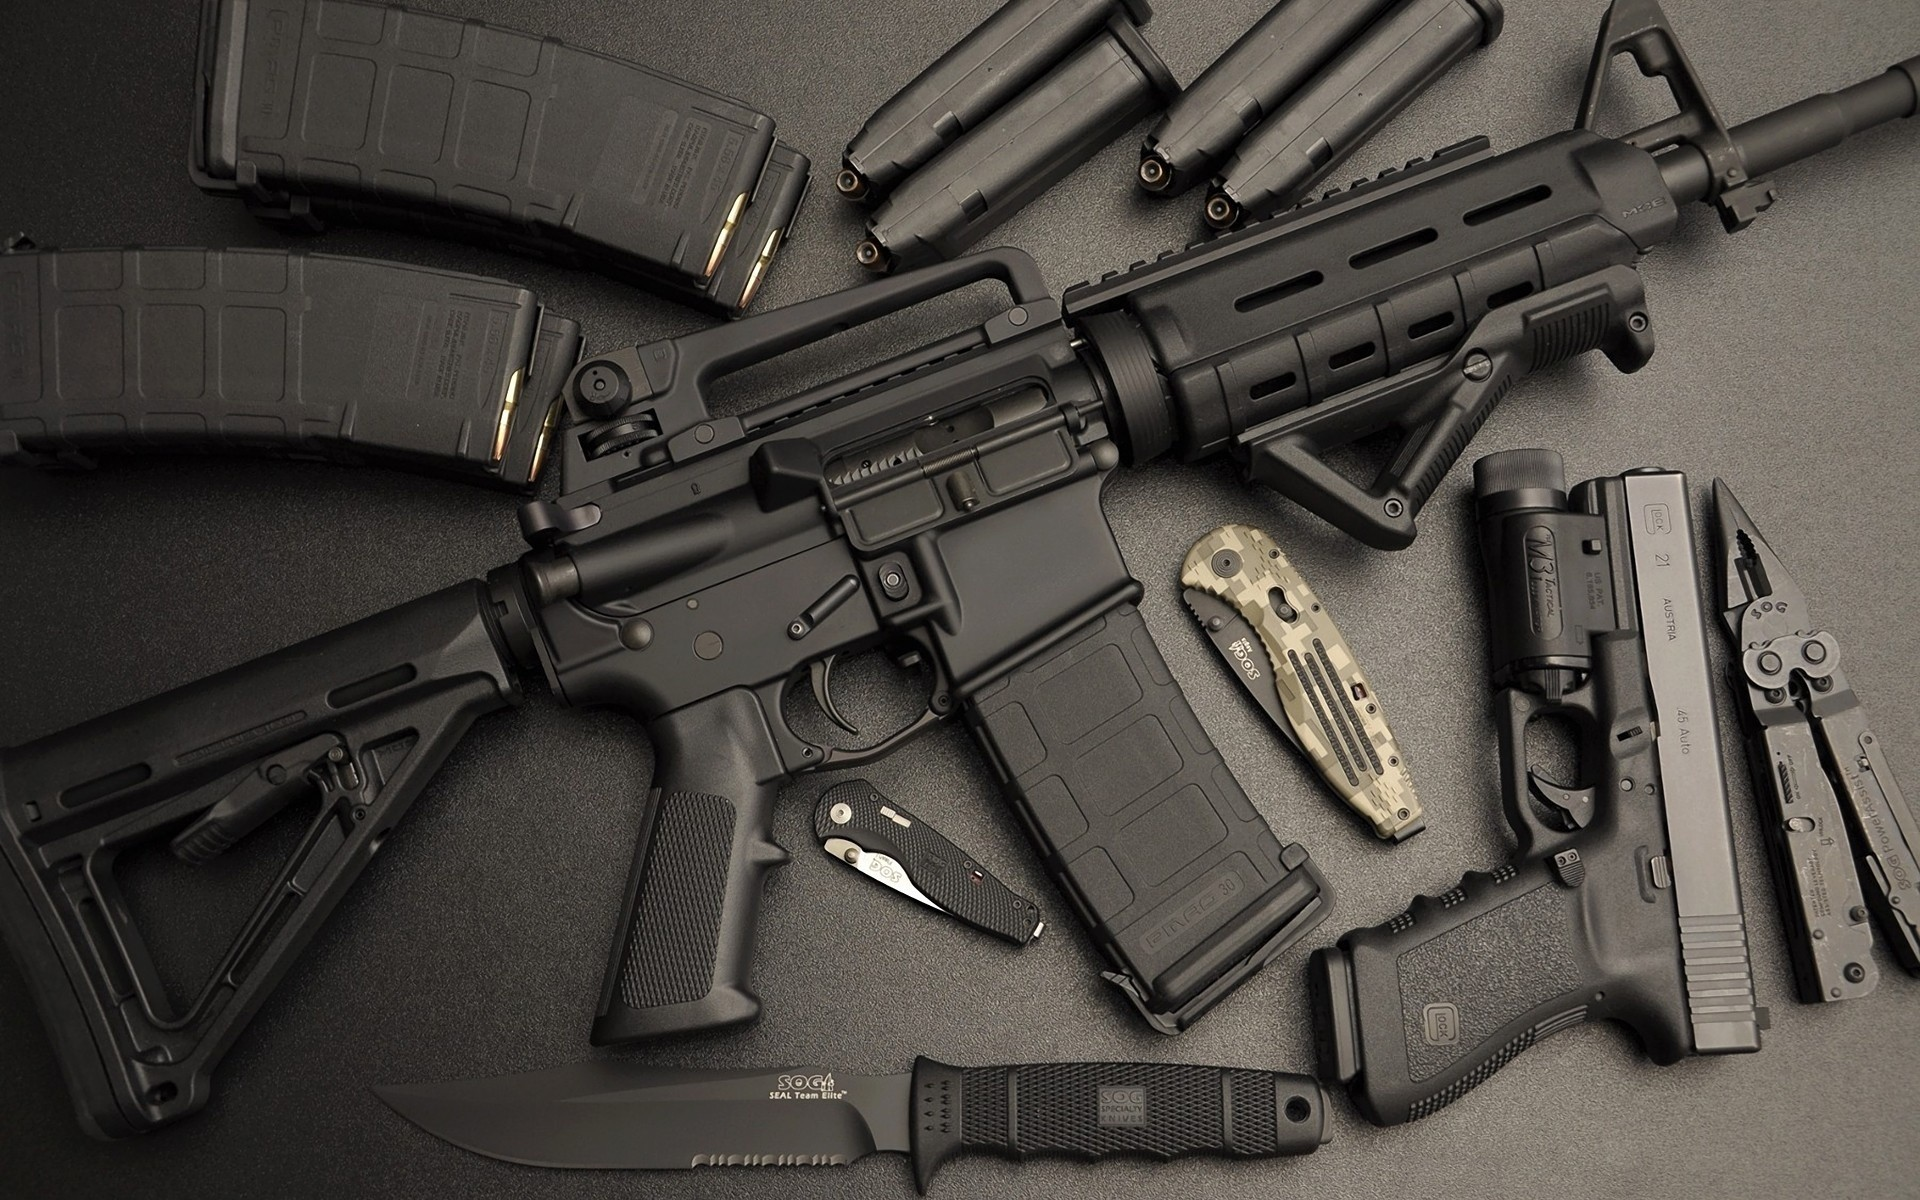 Ar 15 Wallpaper Pictures 71 images 1920x1200